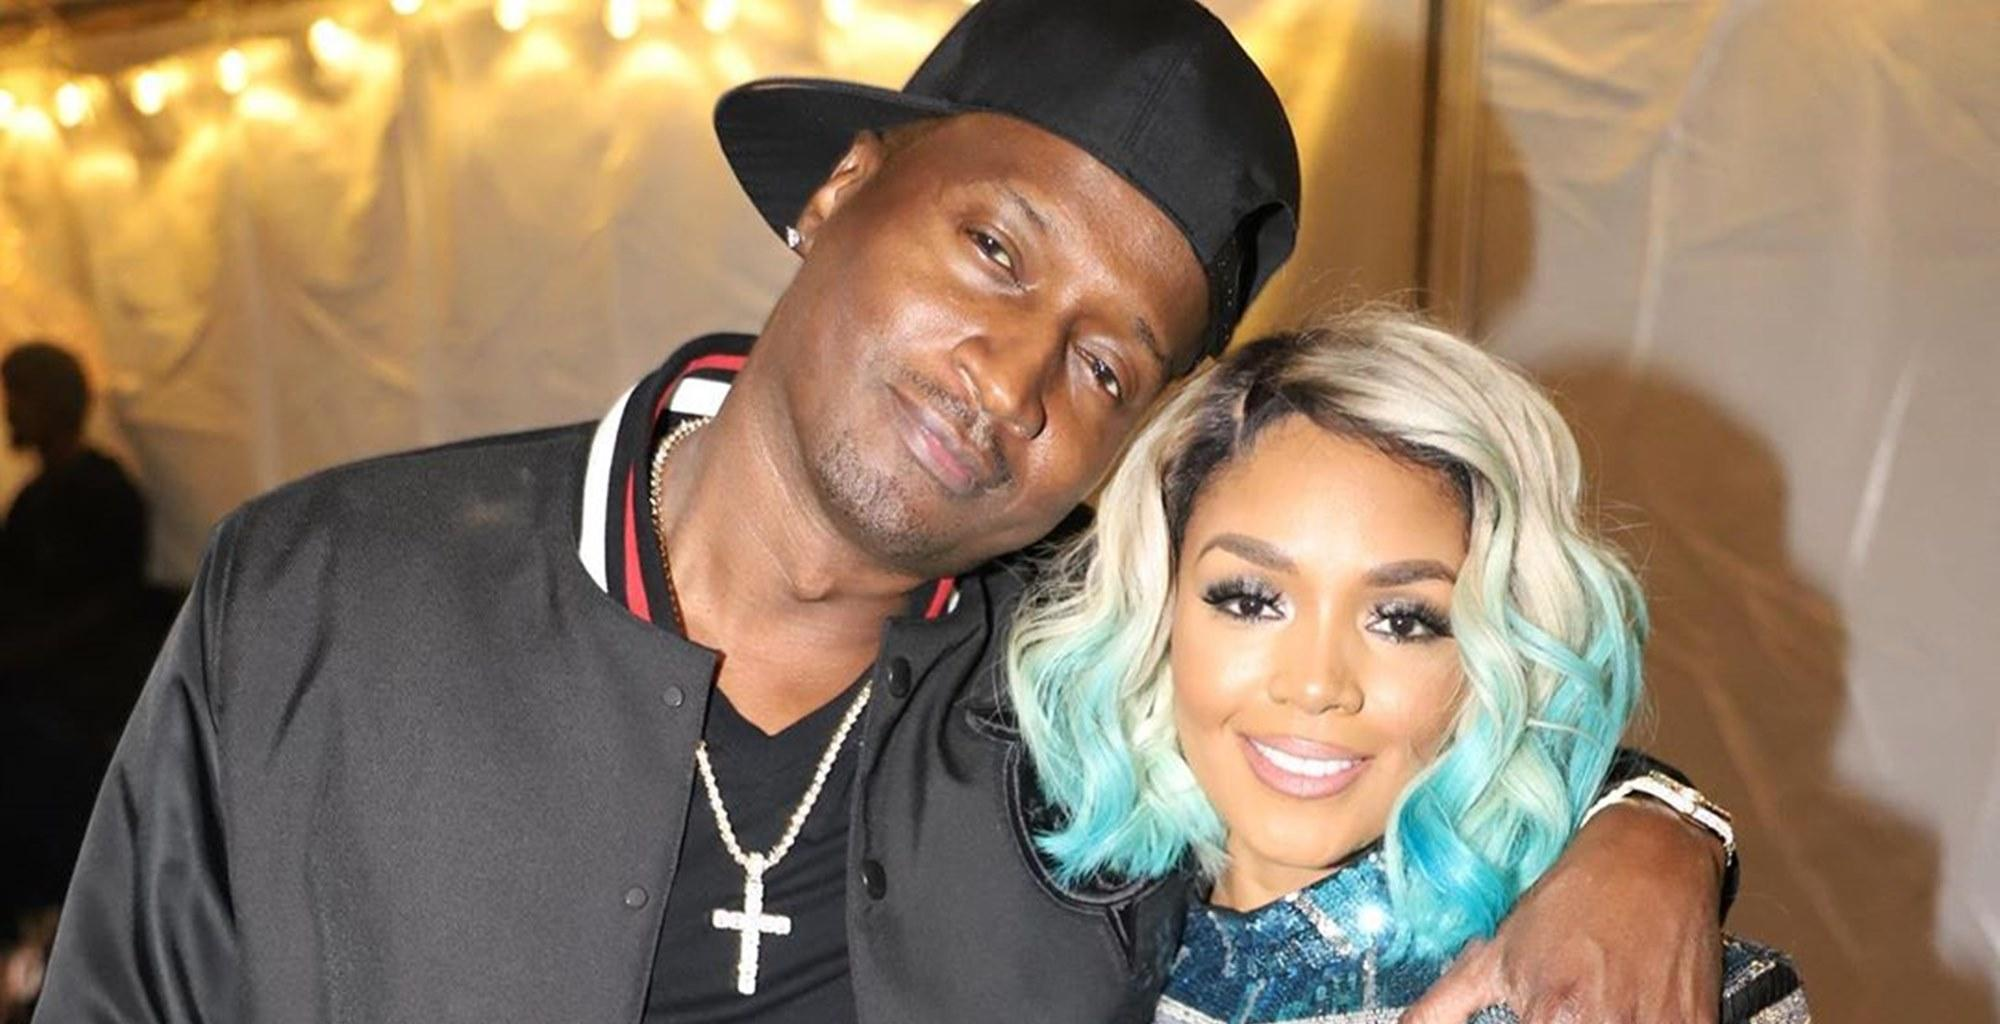 Rasheeda Frost Puts Her Stunning Figure On Full Display In Black Bathing Suit In Video Where She Is Pushed By Husband Kirk Frost In Their Freezing Pool While In Quarantine